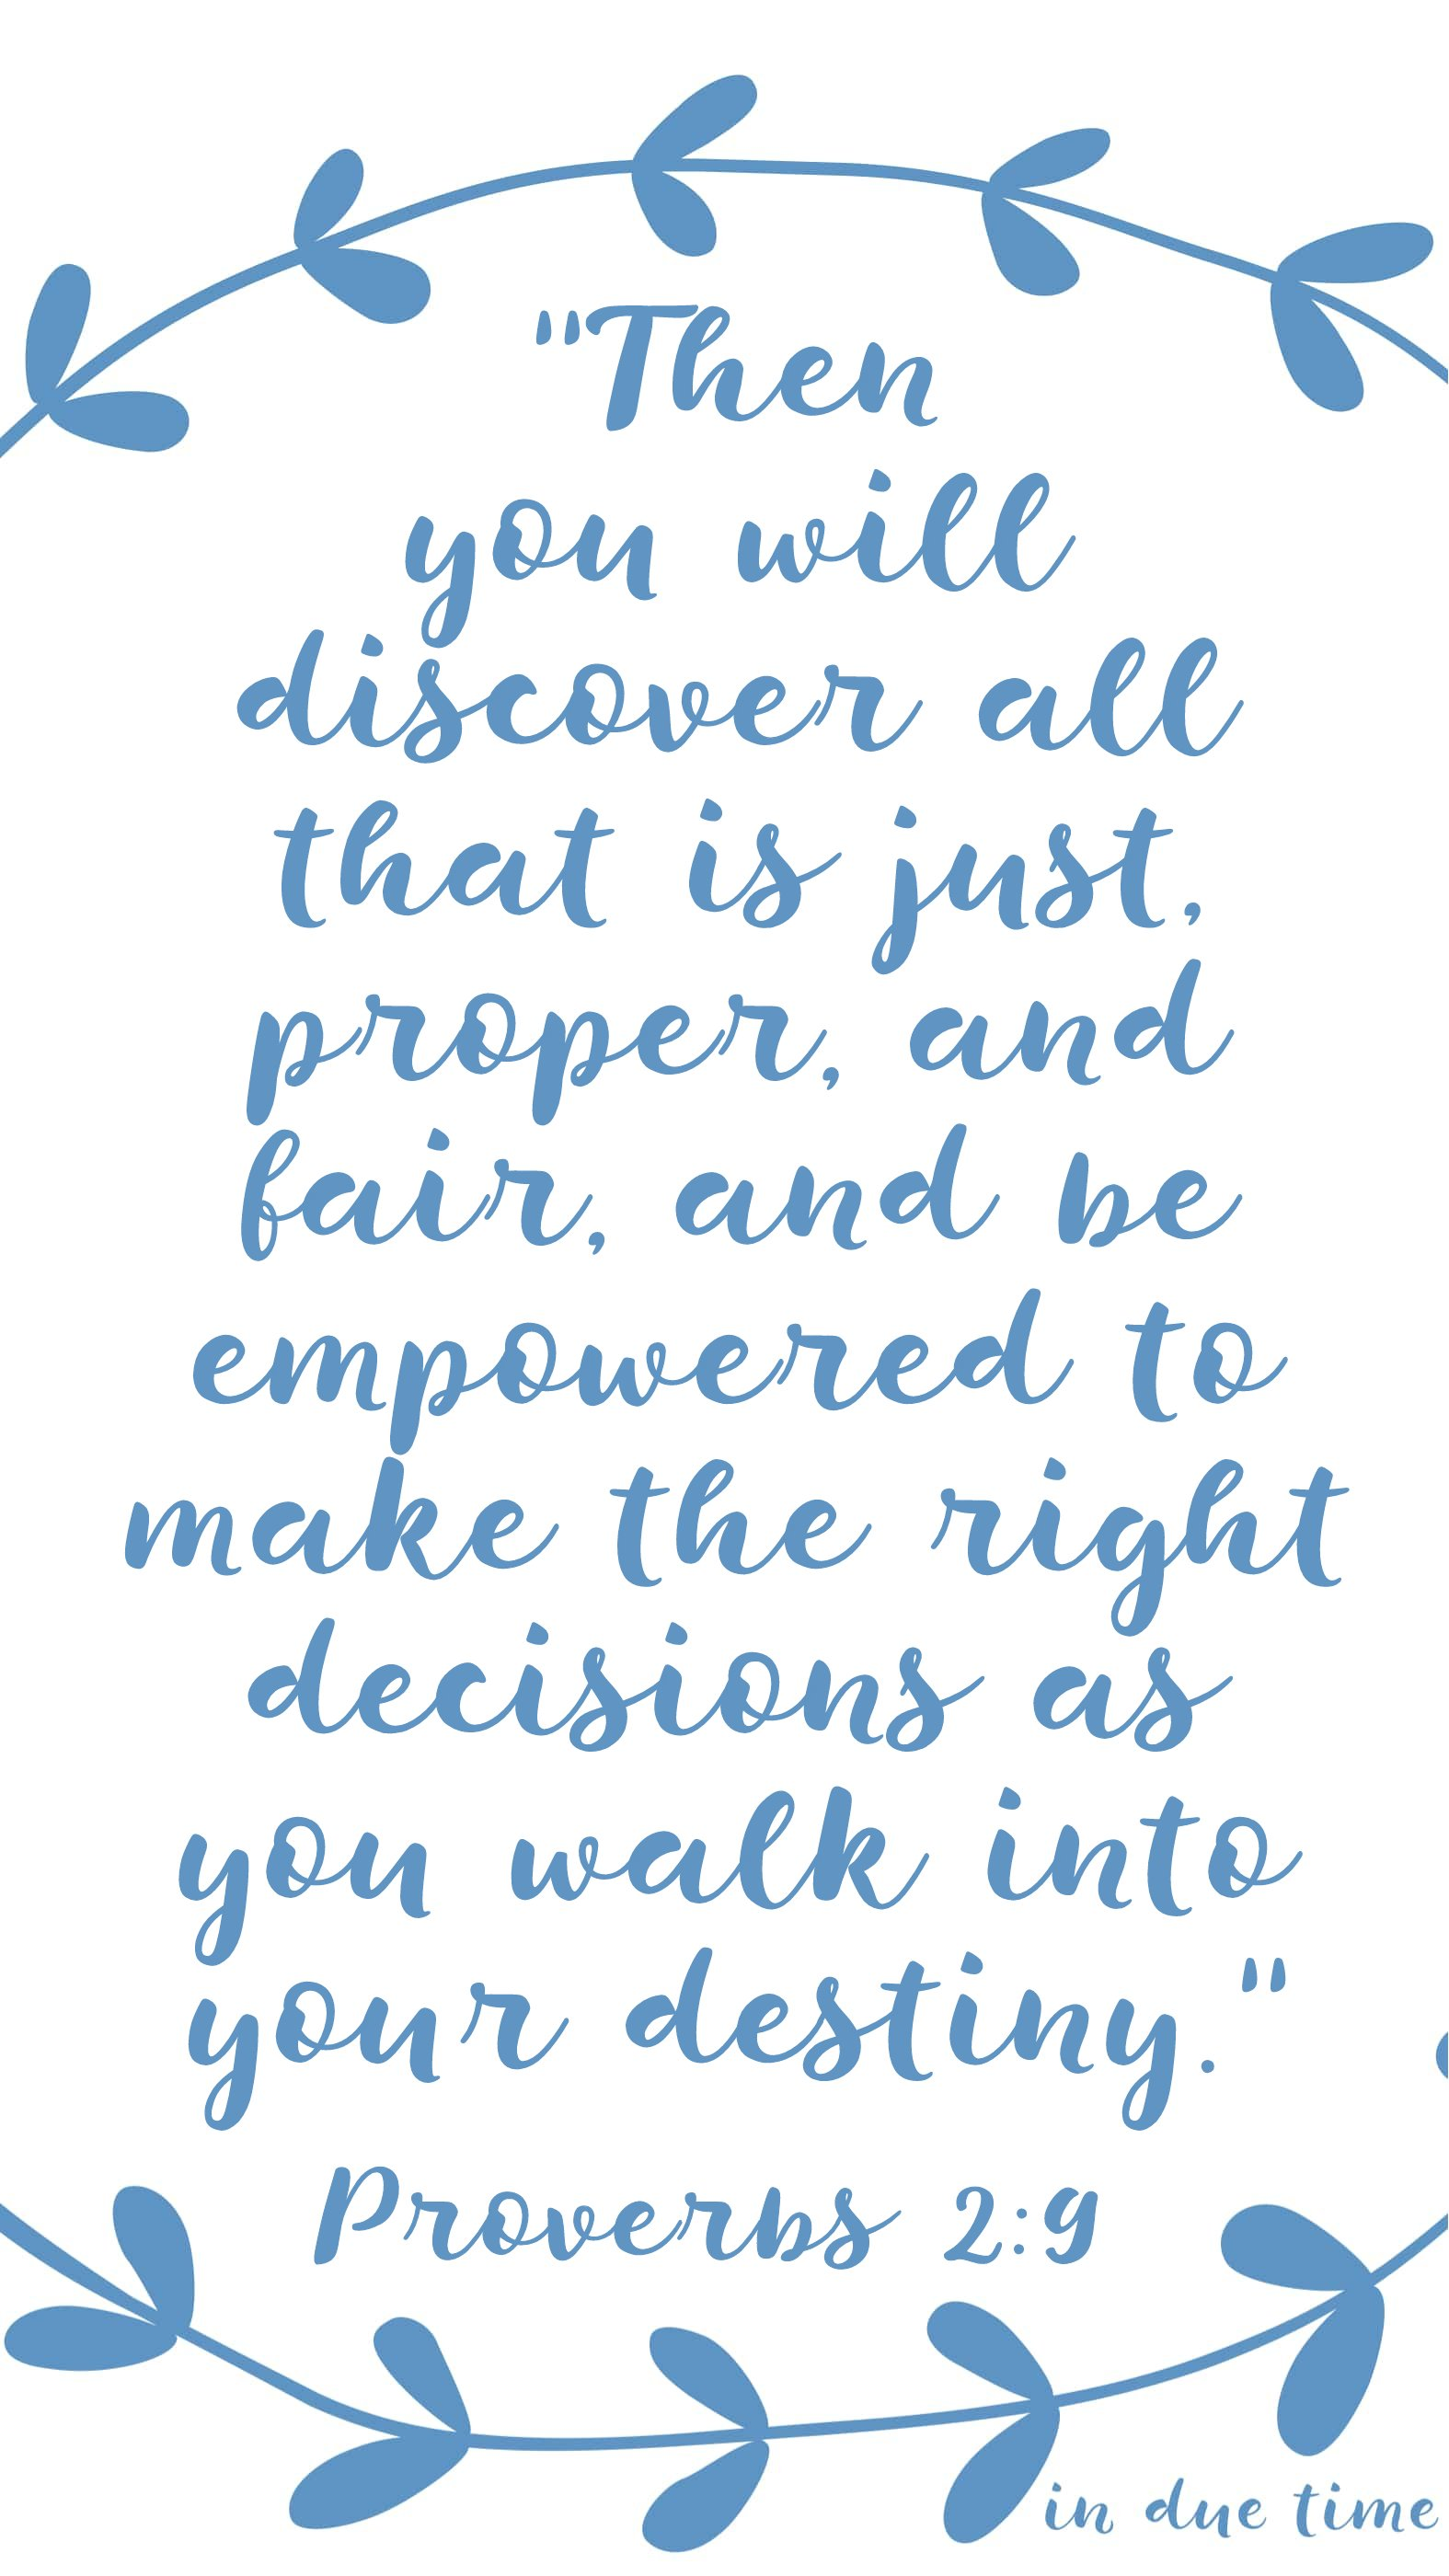 proverbs 2 - then you will discover what is just